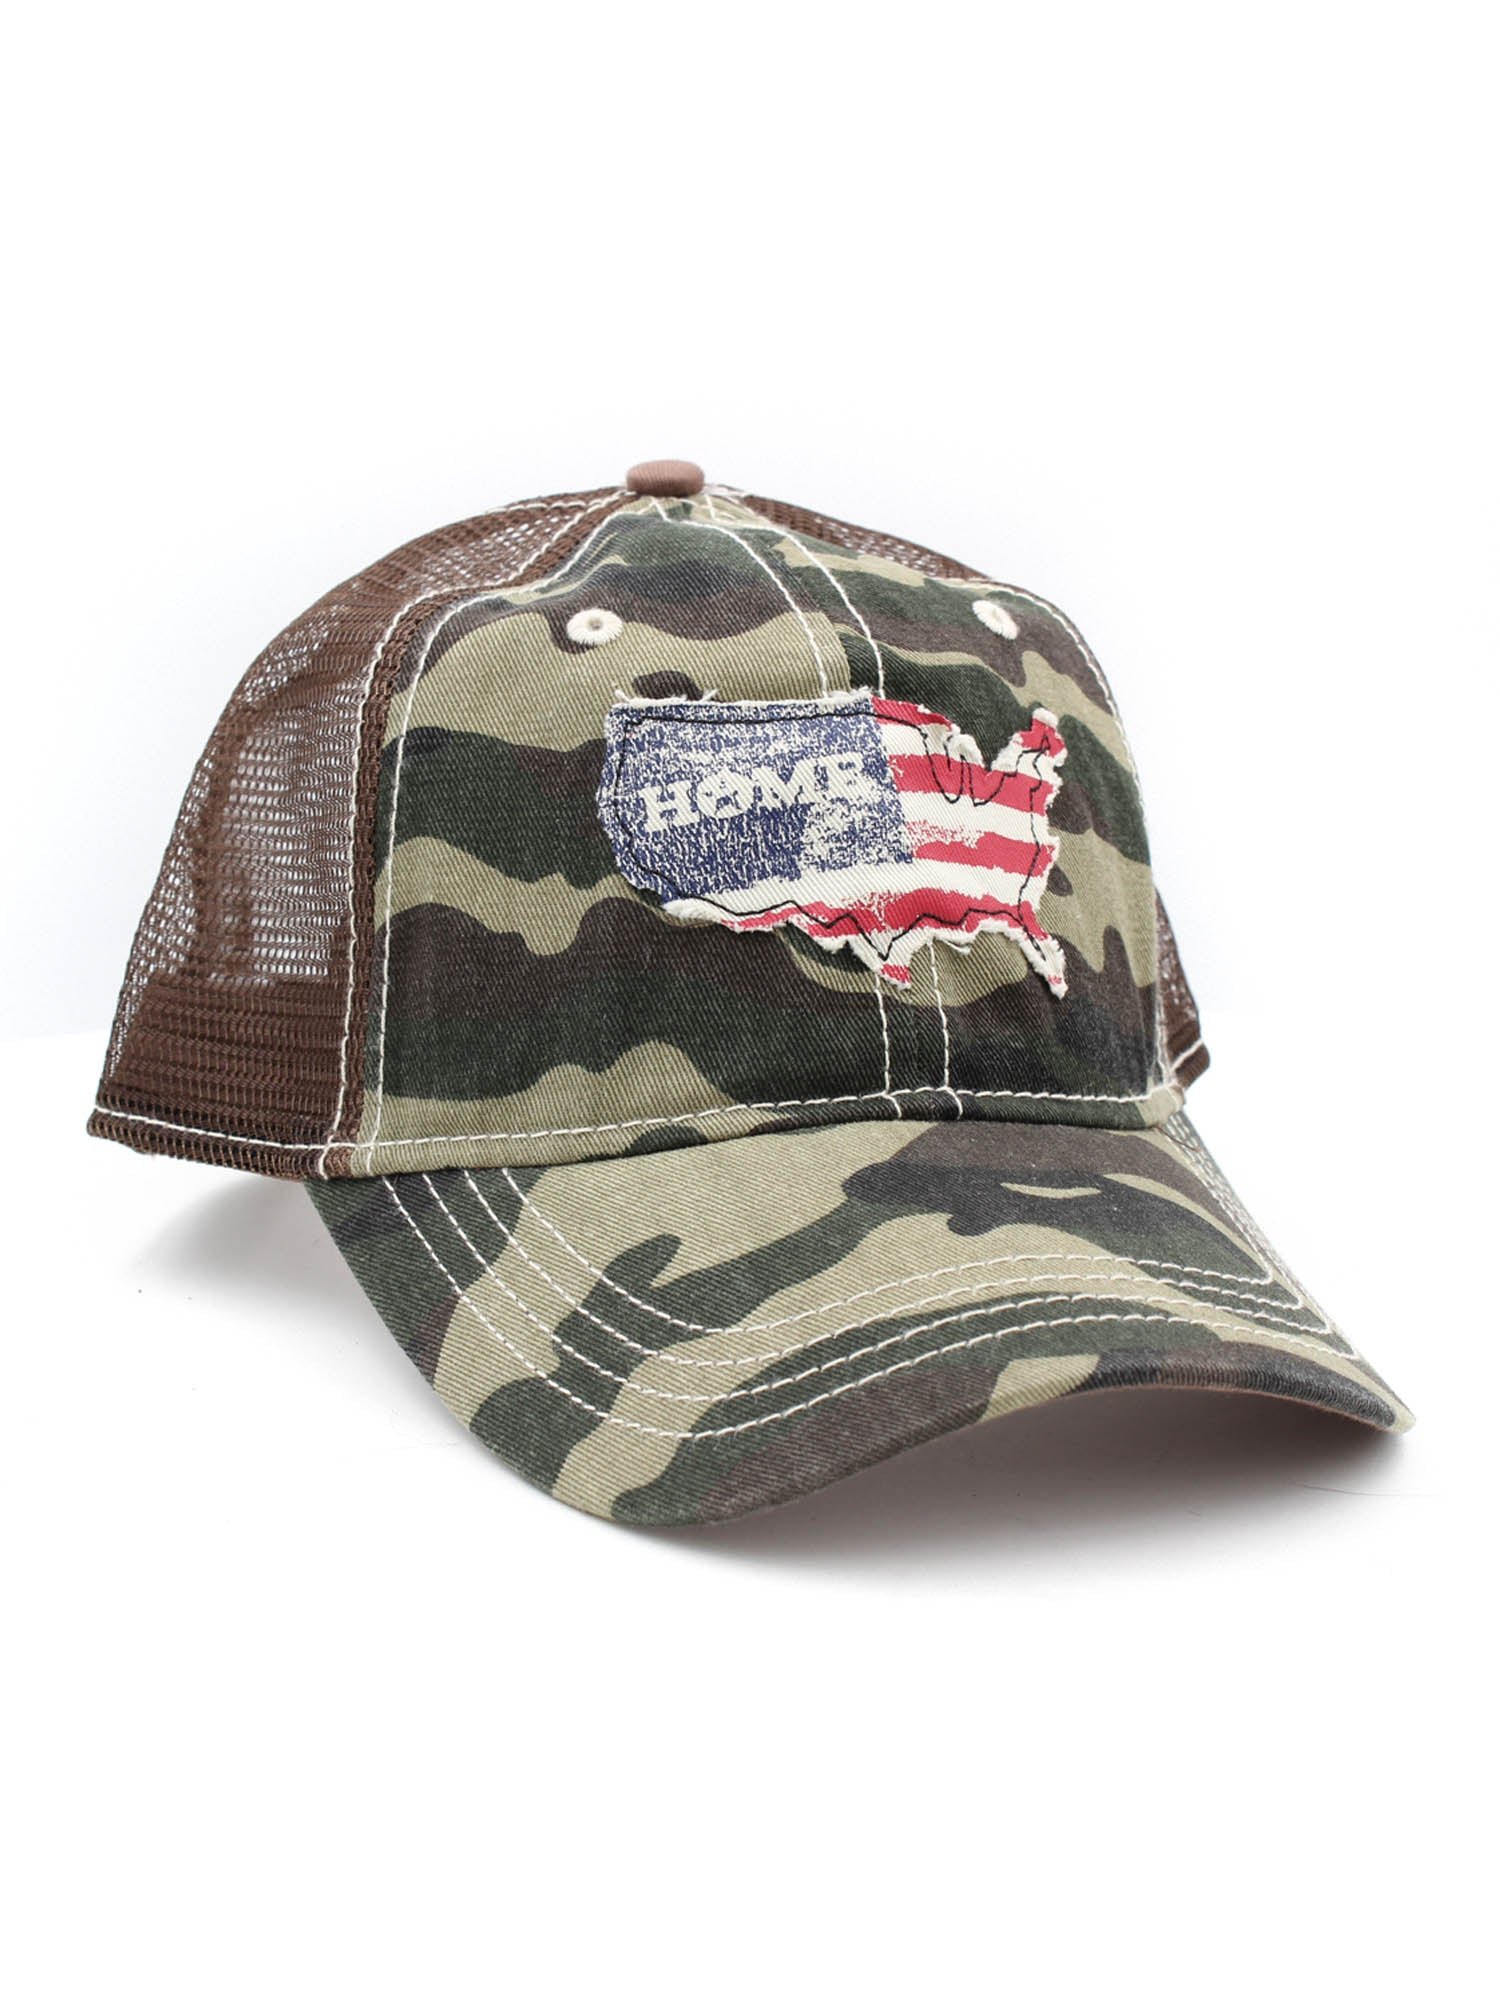 03410572a47 H3 Headwear USA Home Camo Mesh Trucker Adjustable Snapback Hat. Tap to  expand